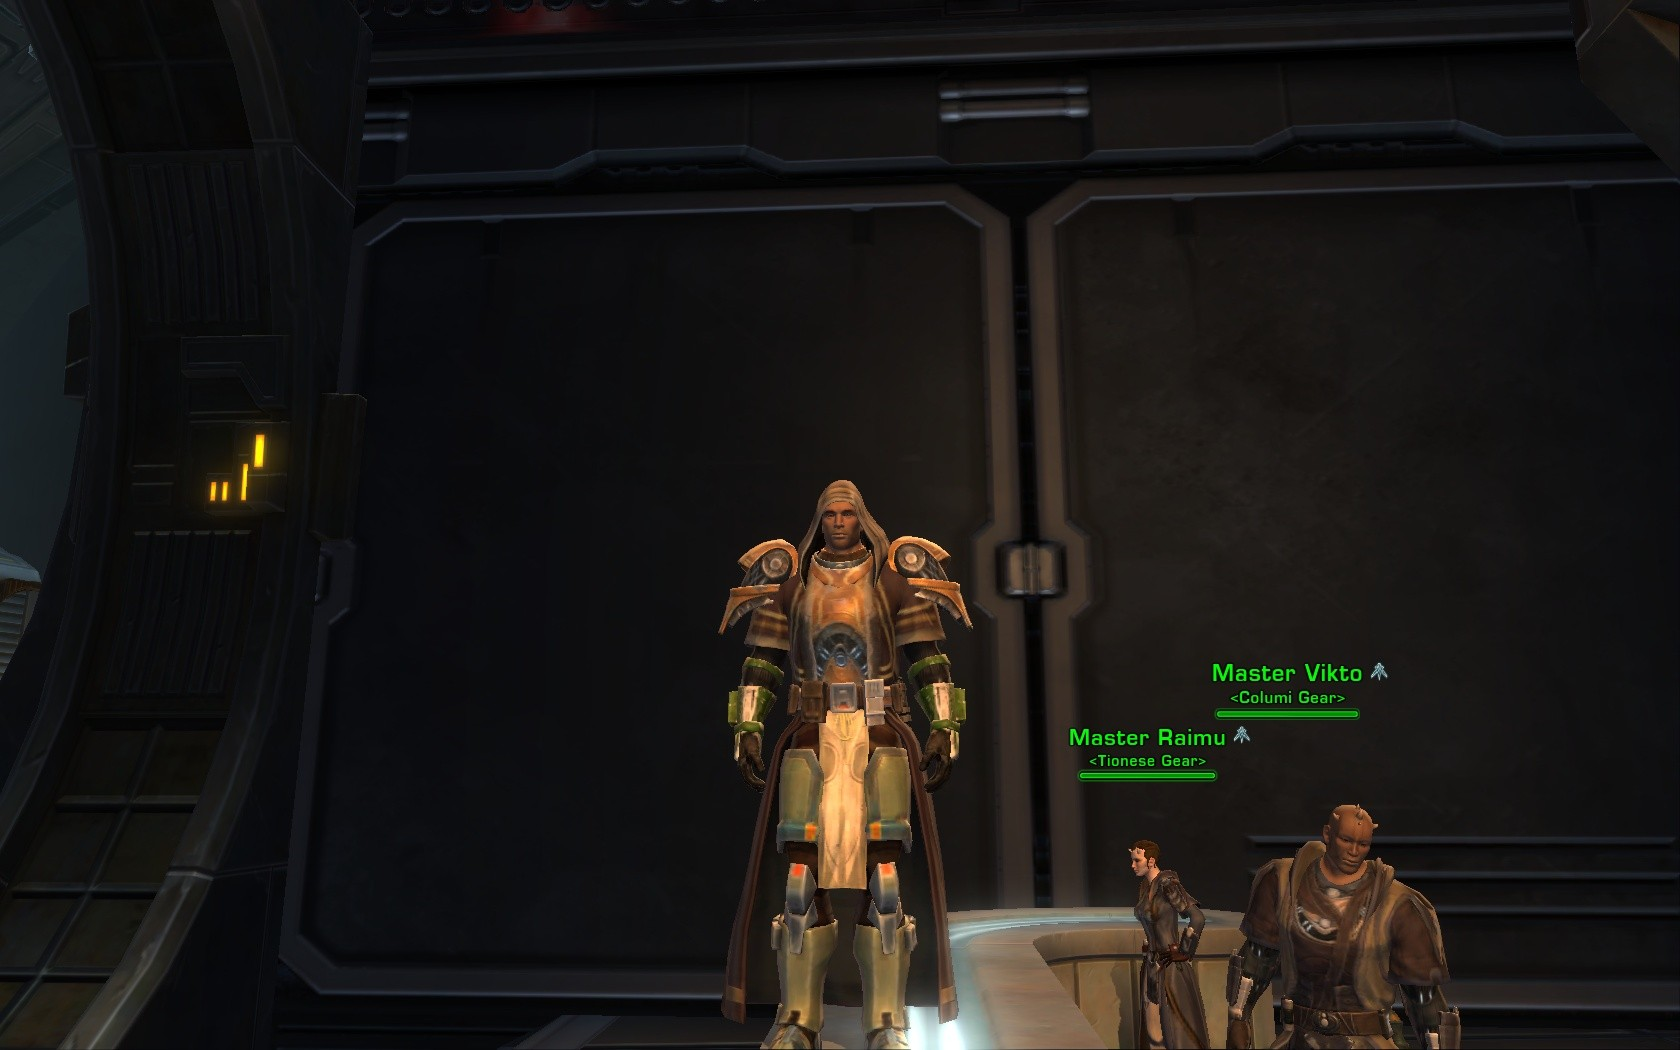 Star Wars: The Old Republic - Columi chest armor, and there's no way to change it's appearance